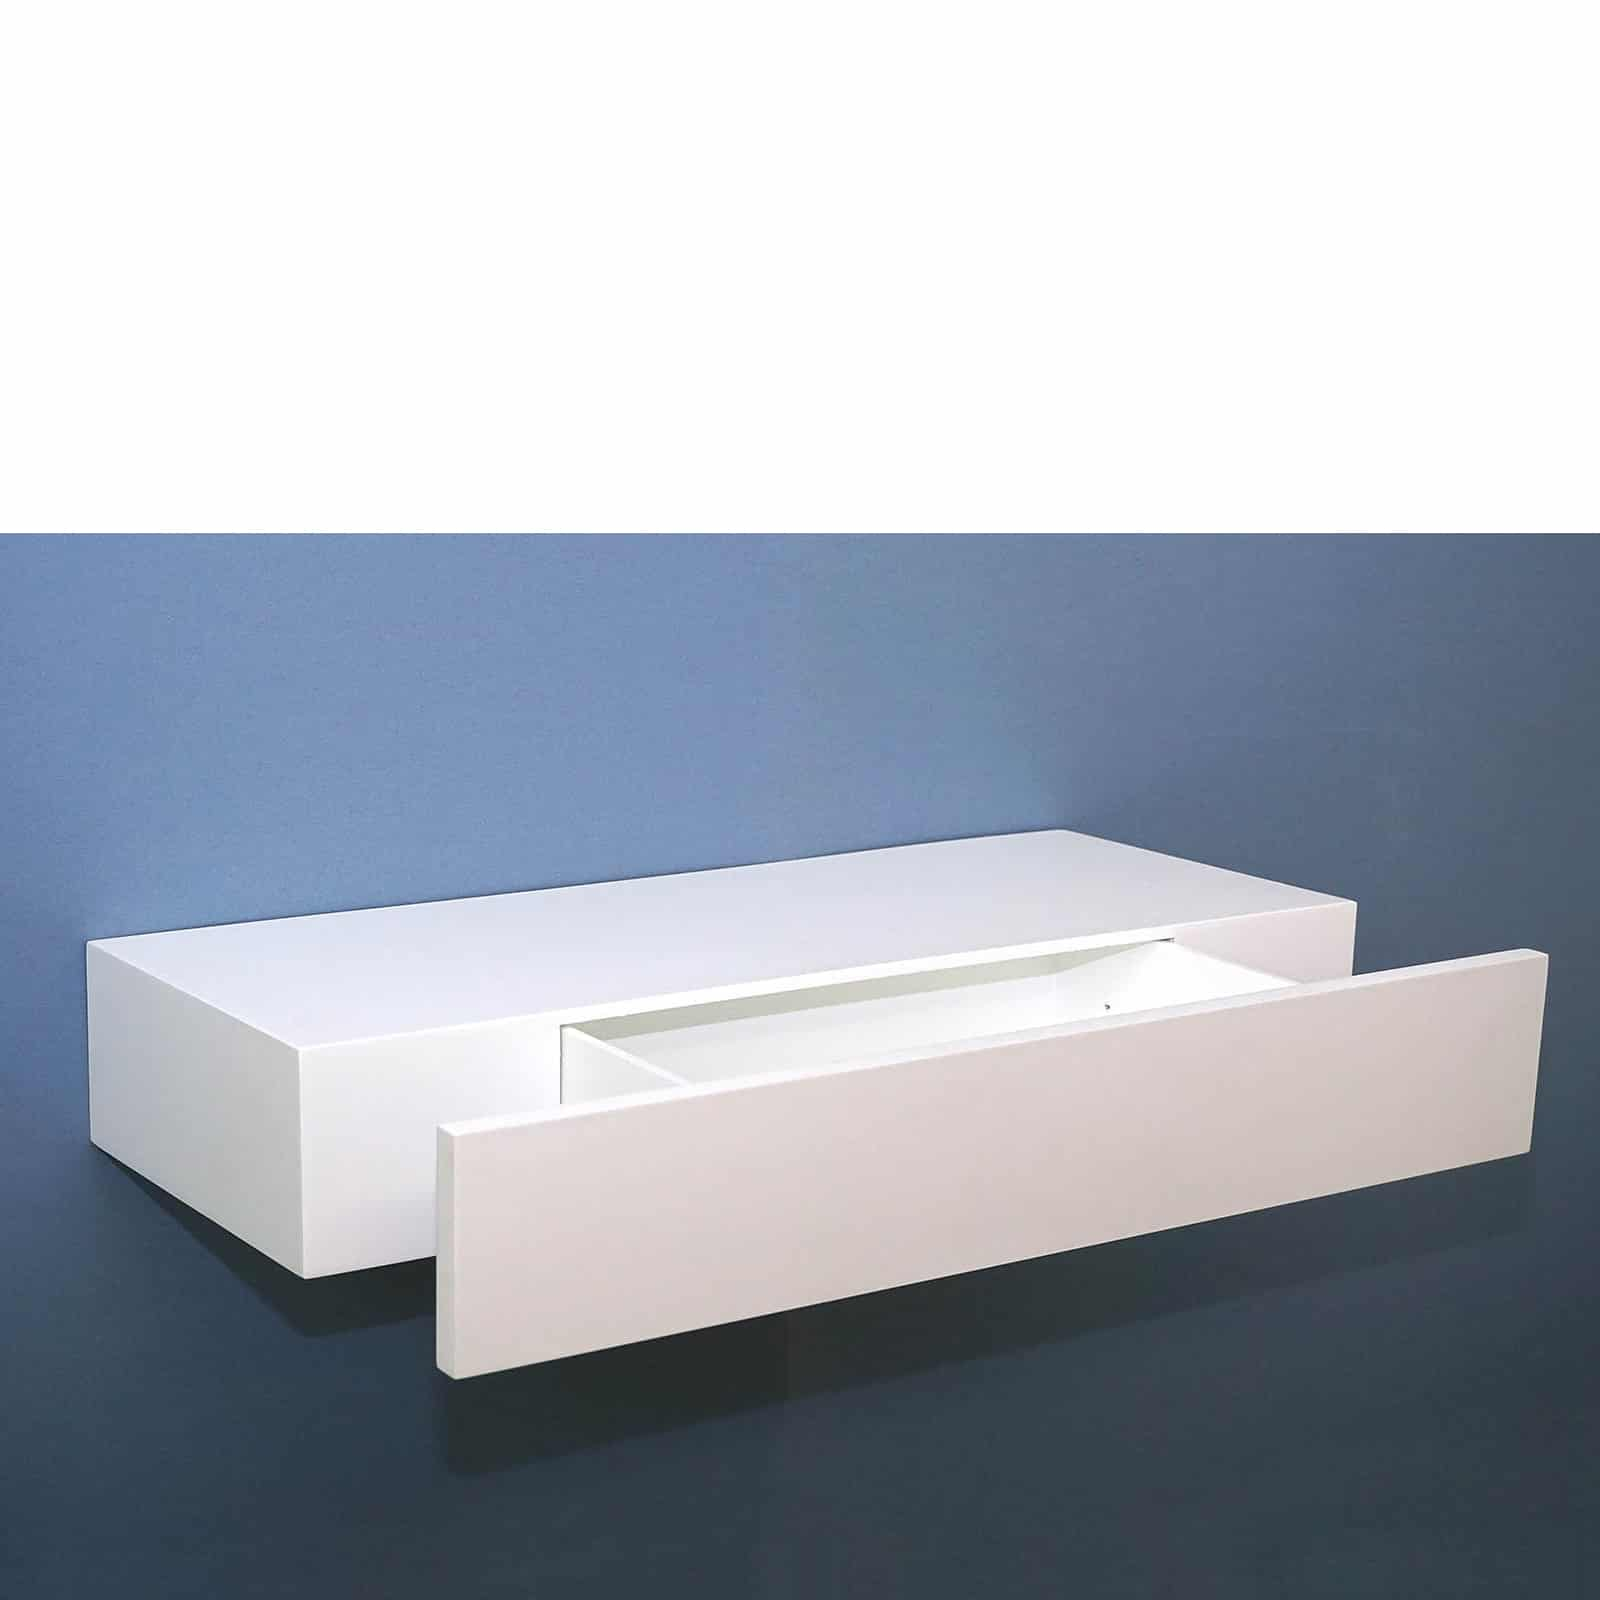 floating shelf with drawer white mastershelf open empty web black gloss high pine kit frosted glass wall modular shelving units argos tall bookcase shelves lights dunelm narrow